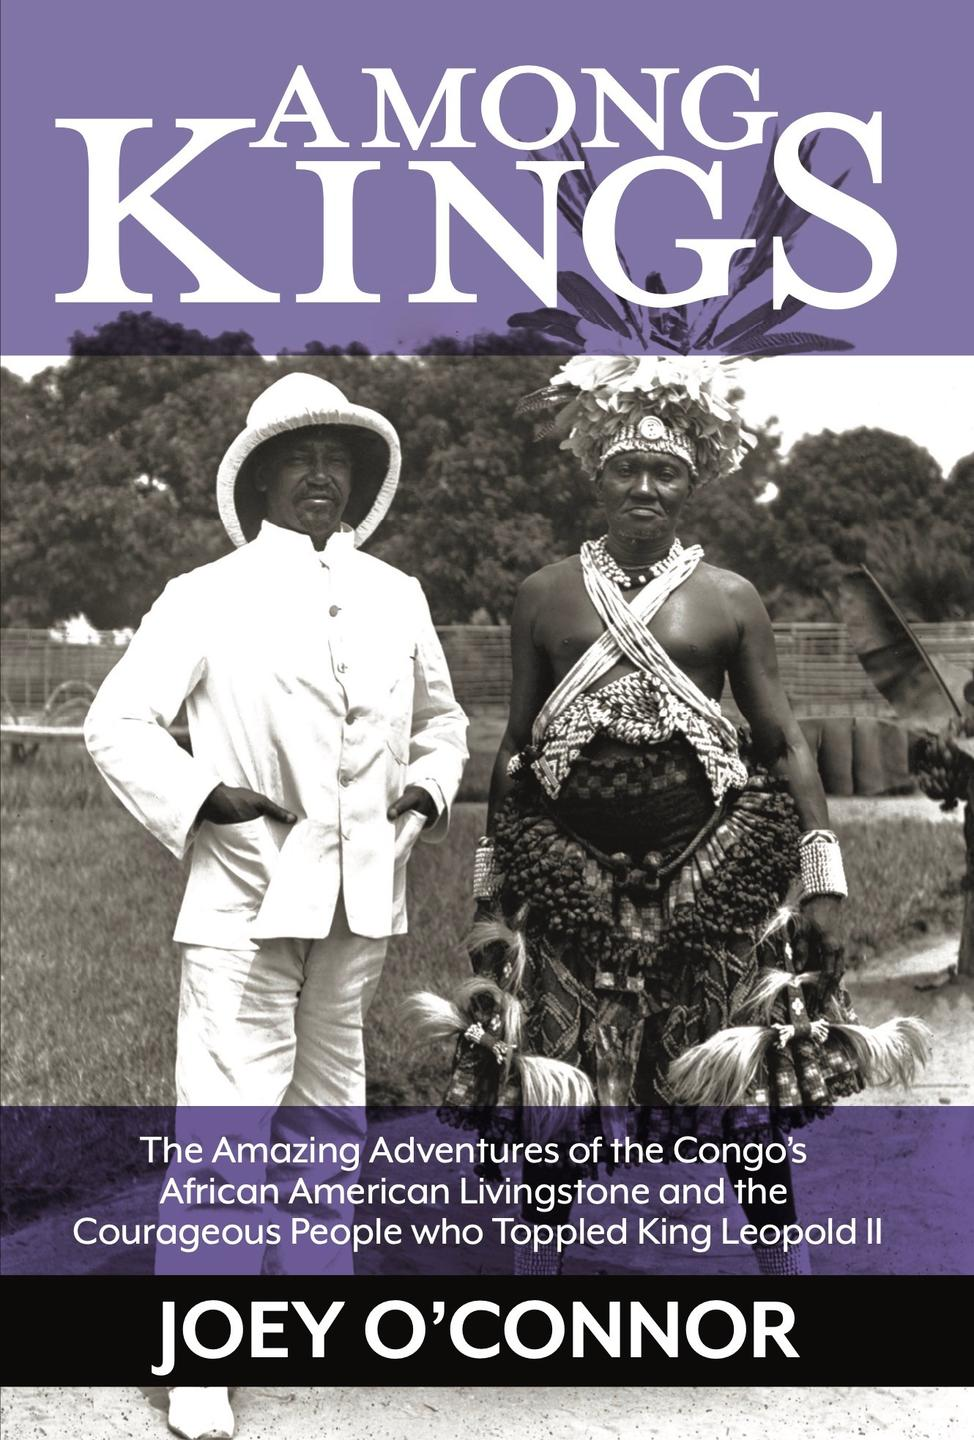 Among Kings: The Amazing Adventures of the Congo's African American Livingstone and the Courageous People who Toppled King Leopold II by Joey O'Connor